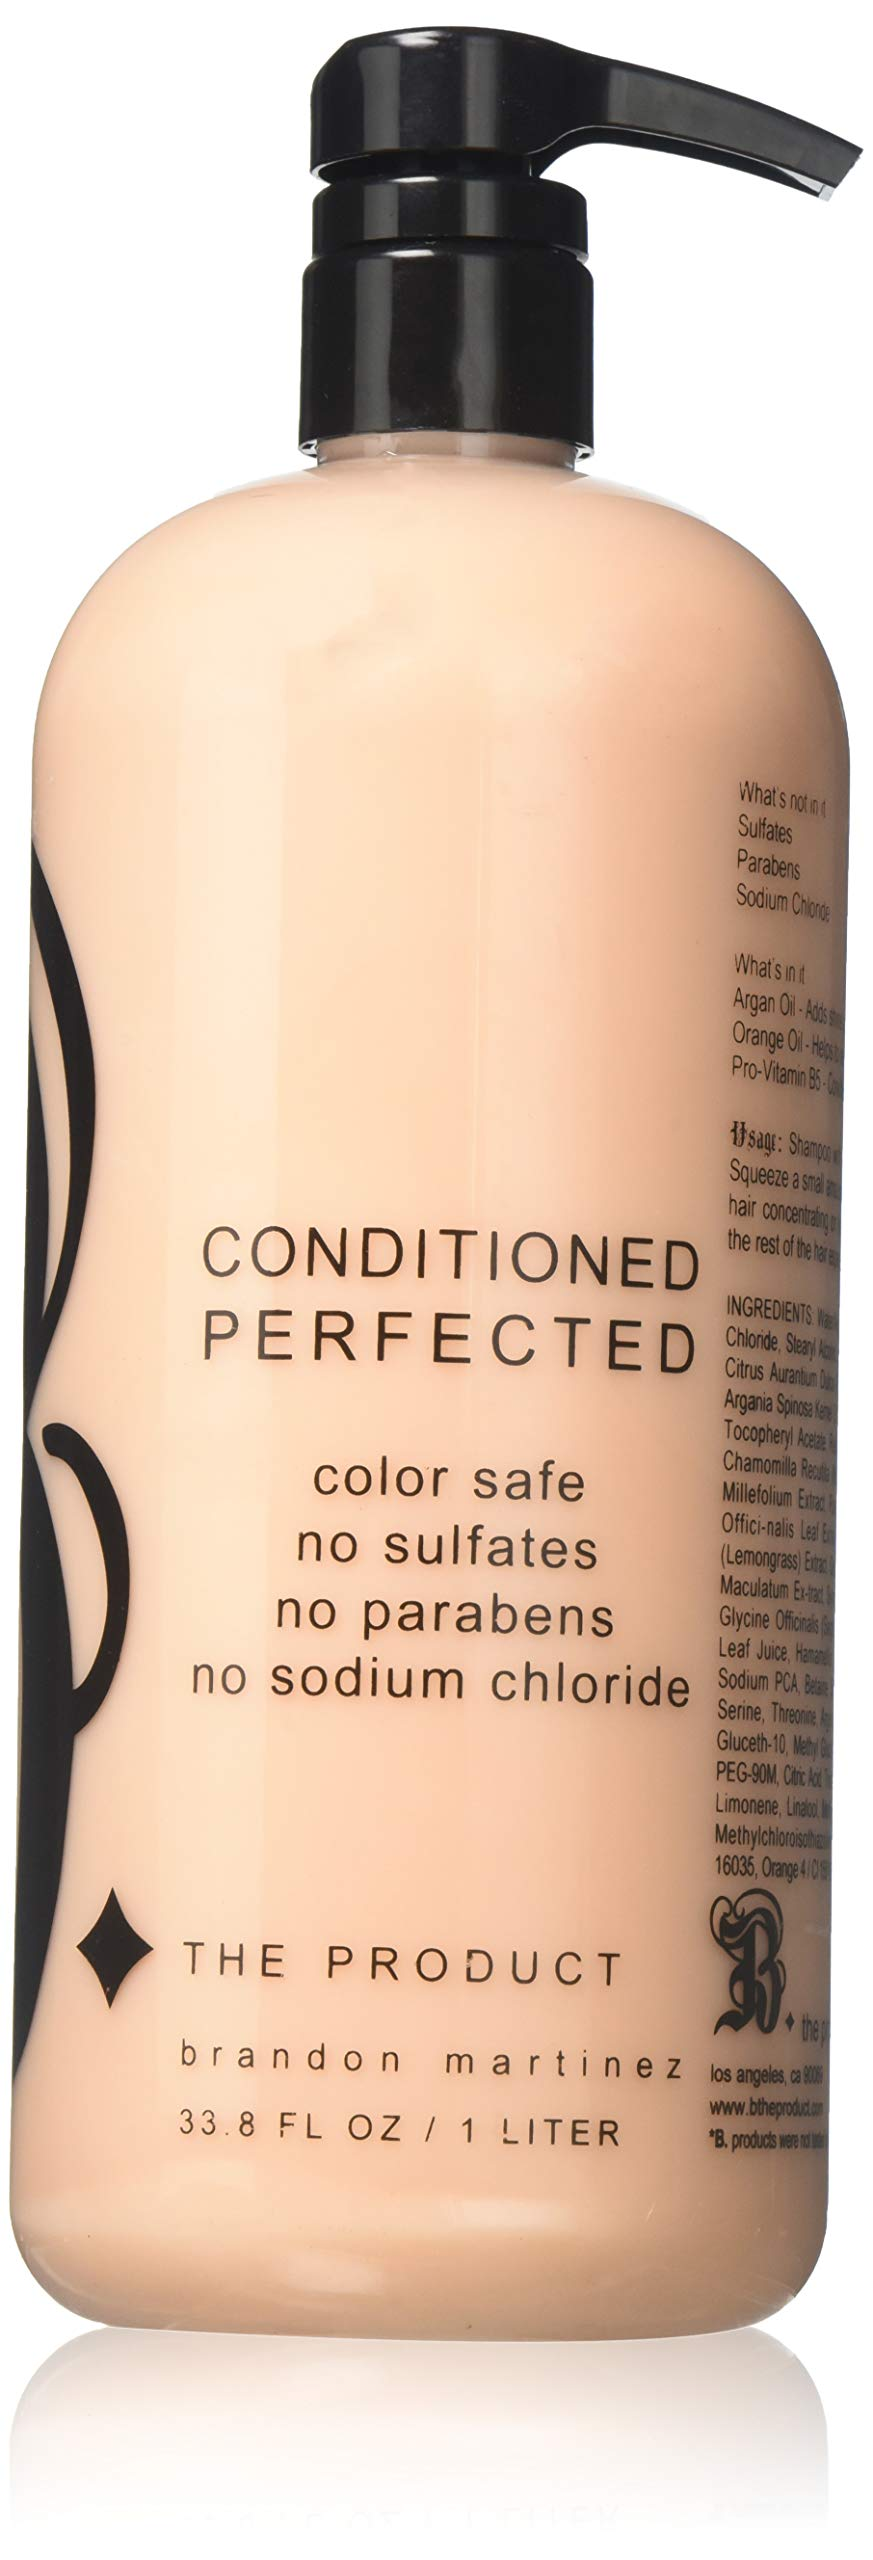 Argan Oil Hair Conditioner For Dry And Damaged Hair, 100% Pure French Argan Oil For Moisture With Pro Vitamin B, Sodium Chloride Free B THE PRODUCT (33.8oz)